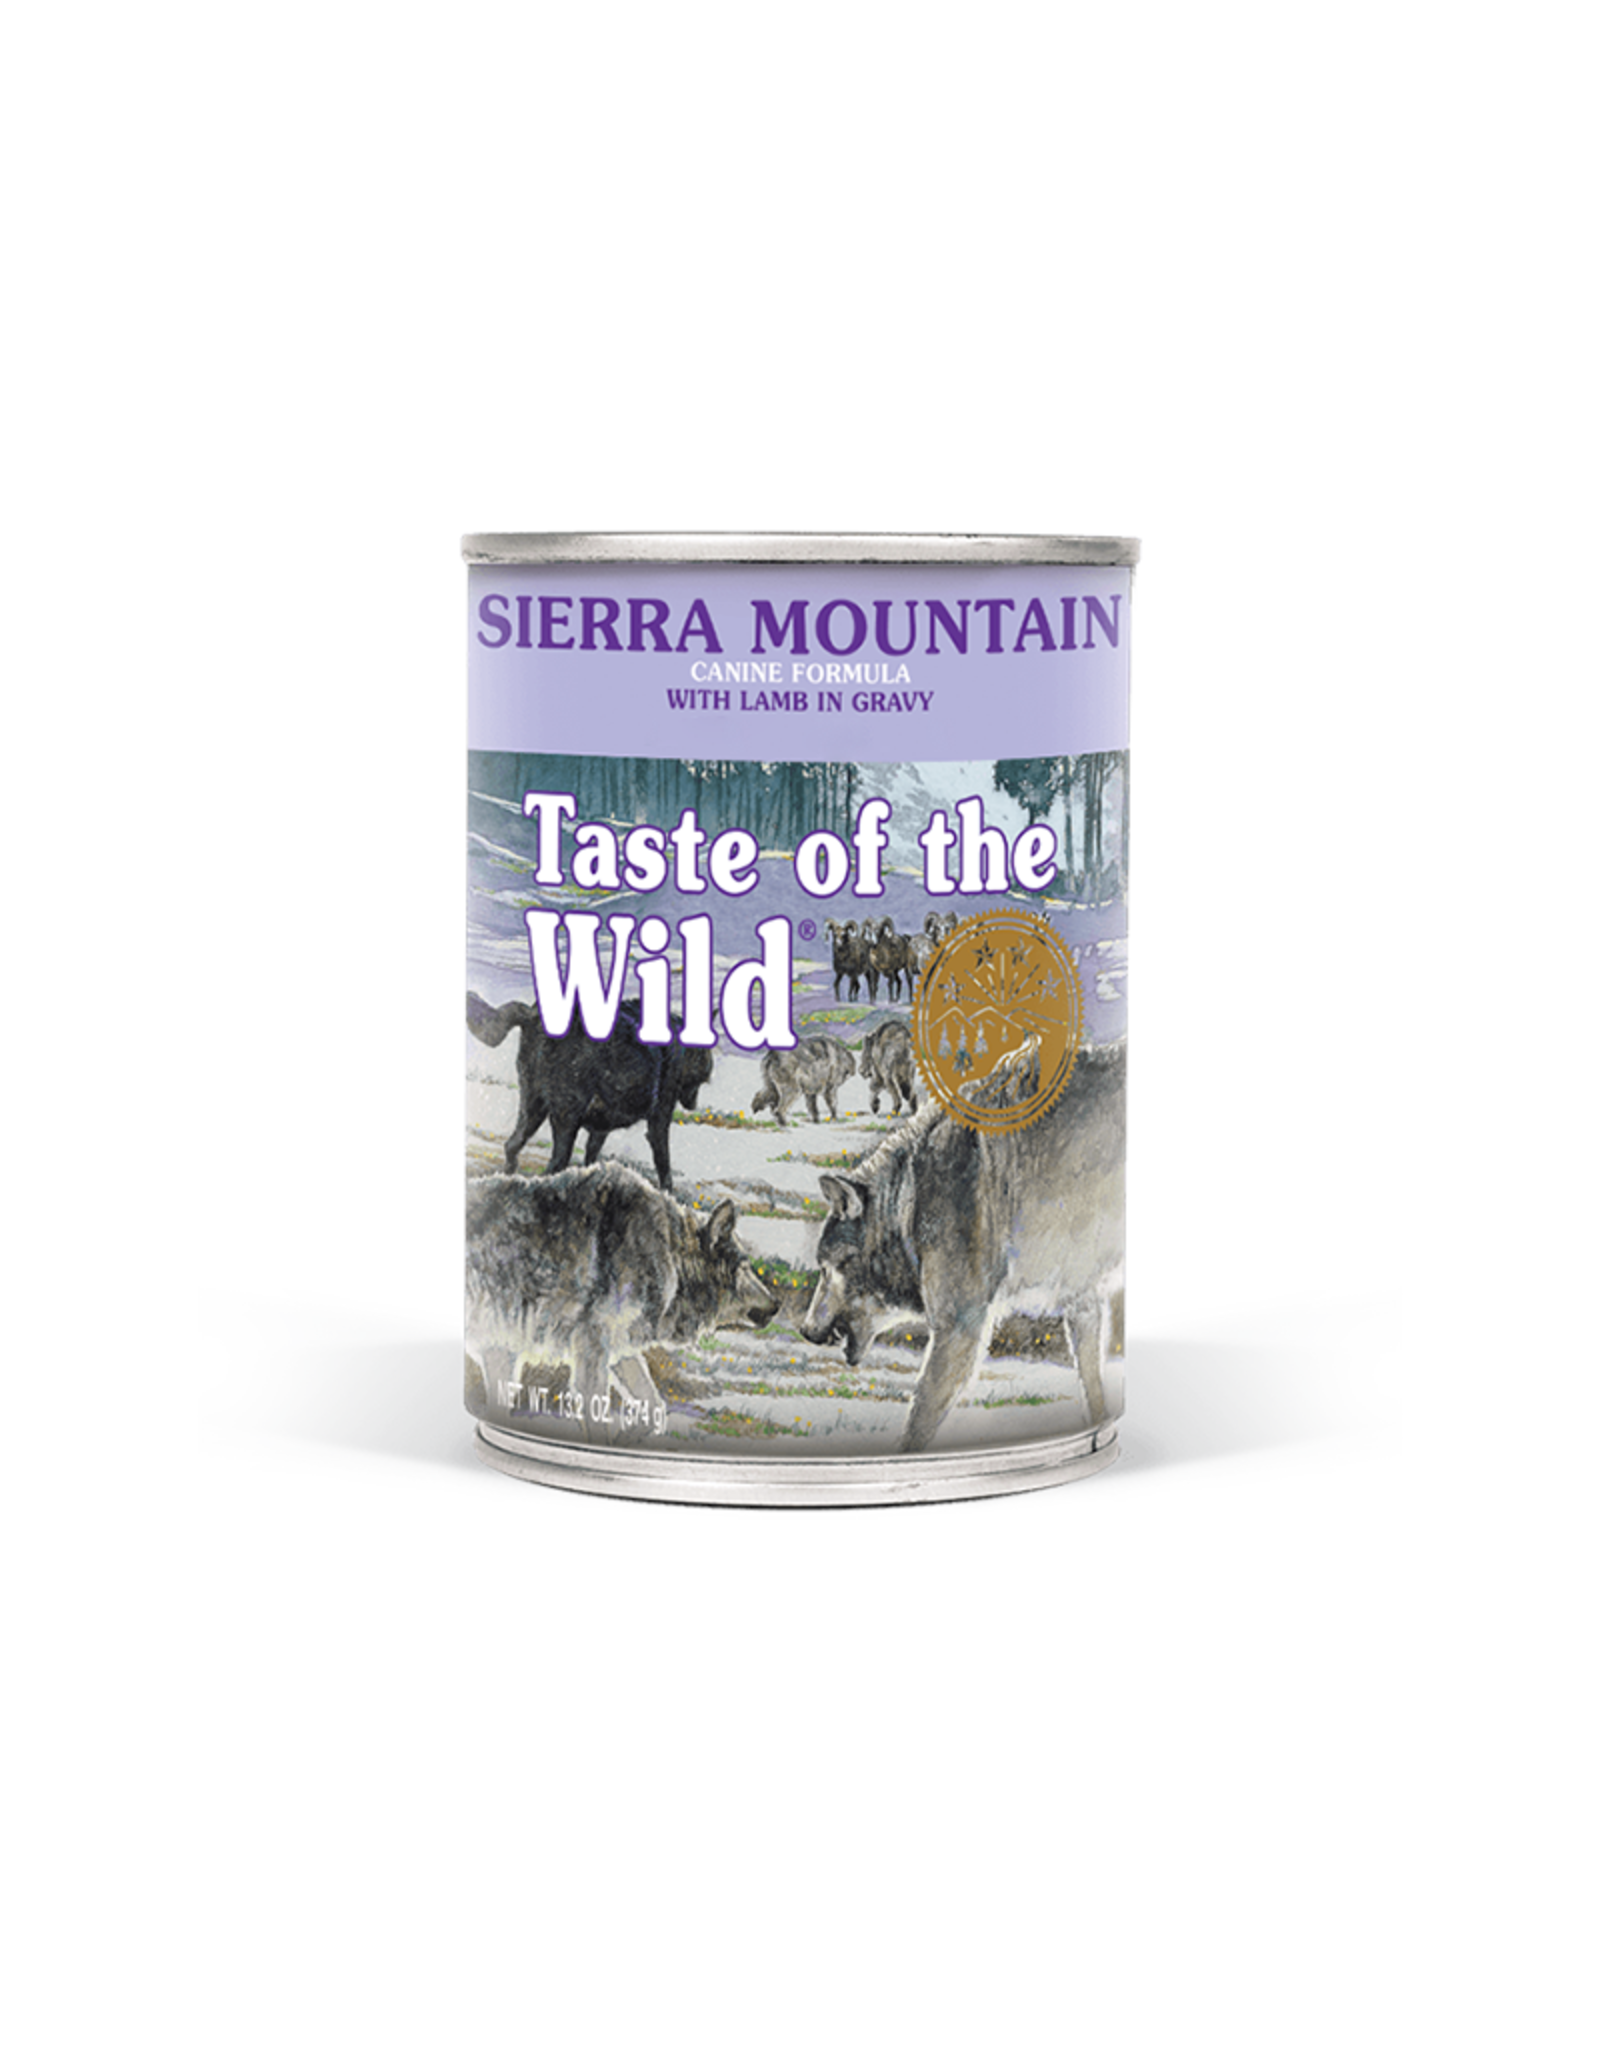 Taste of the Wild Taste of the Wild Dog Food Can